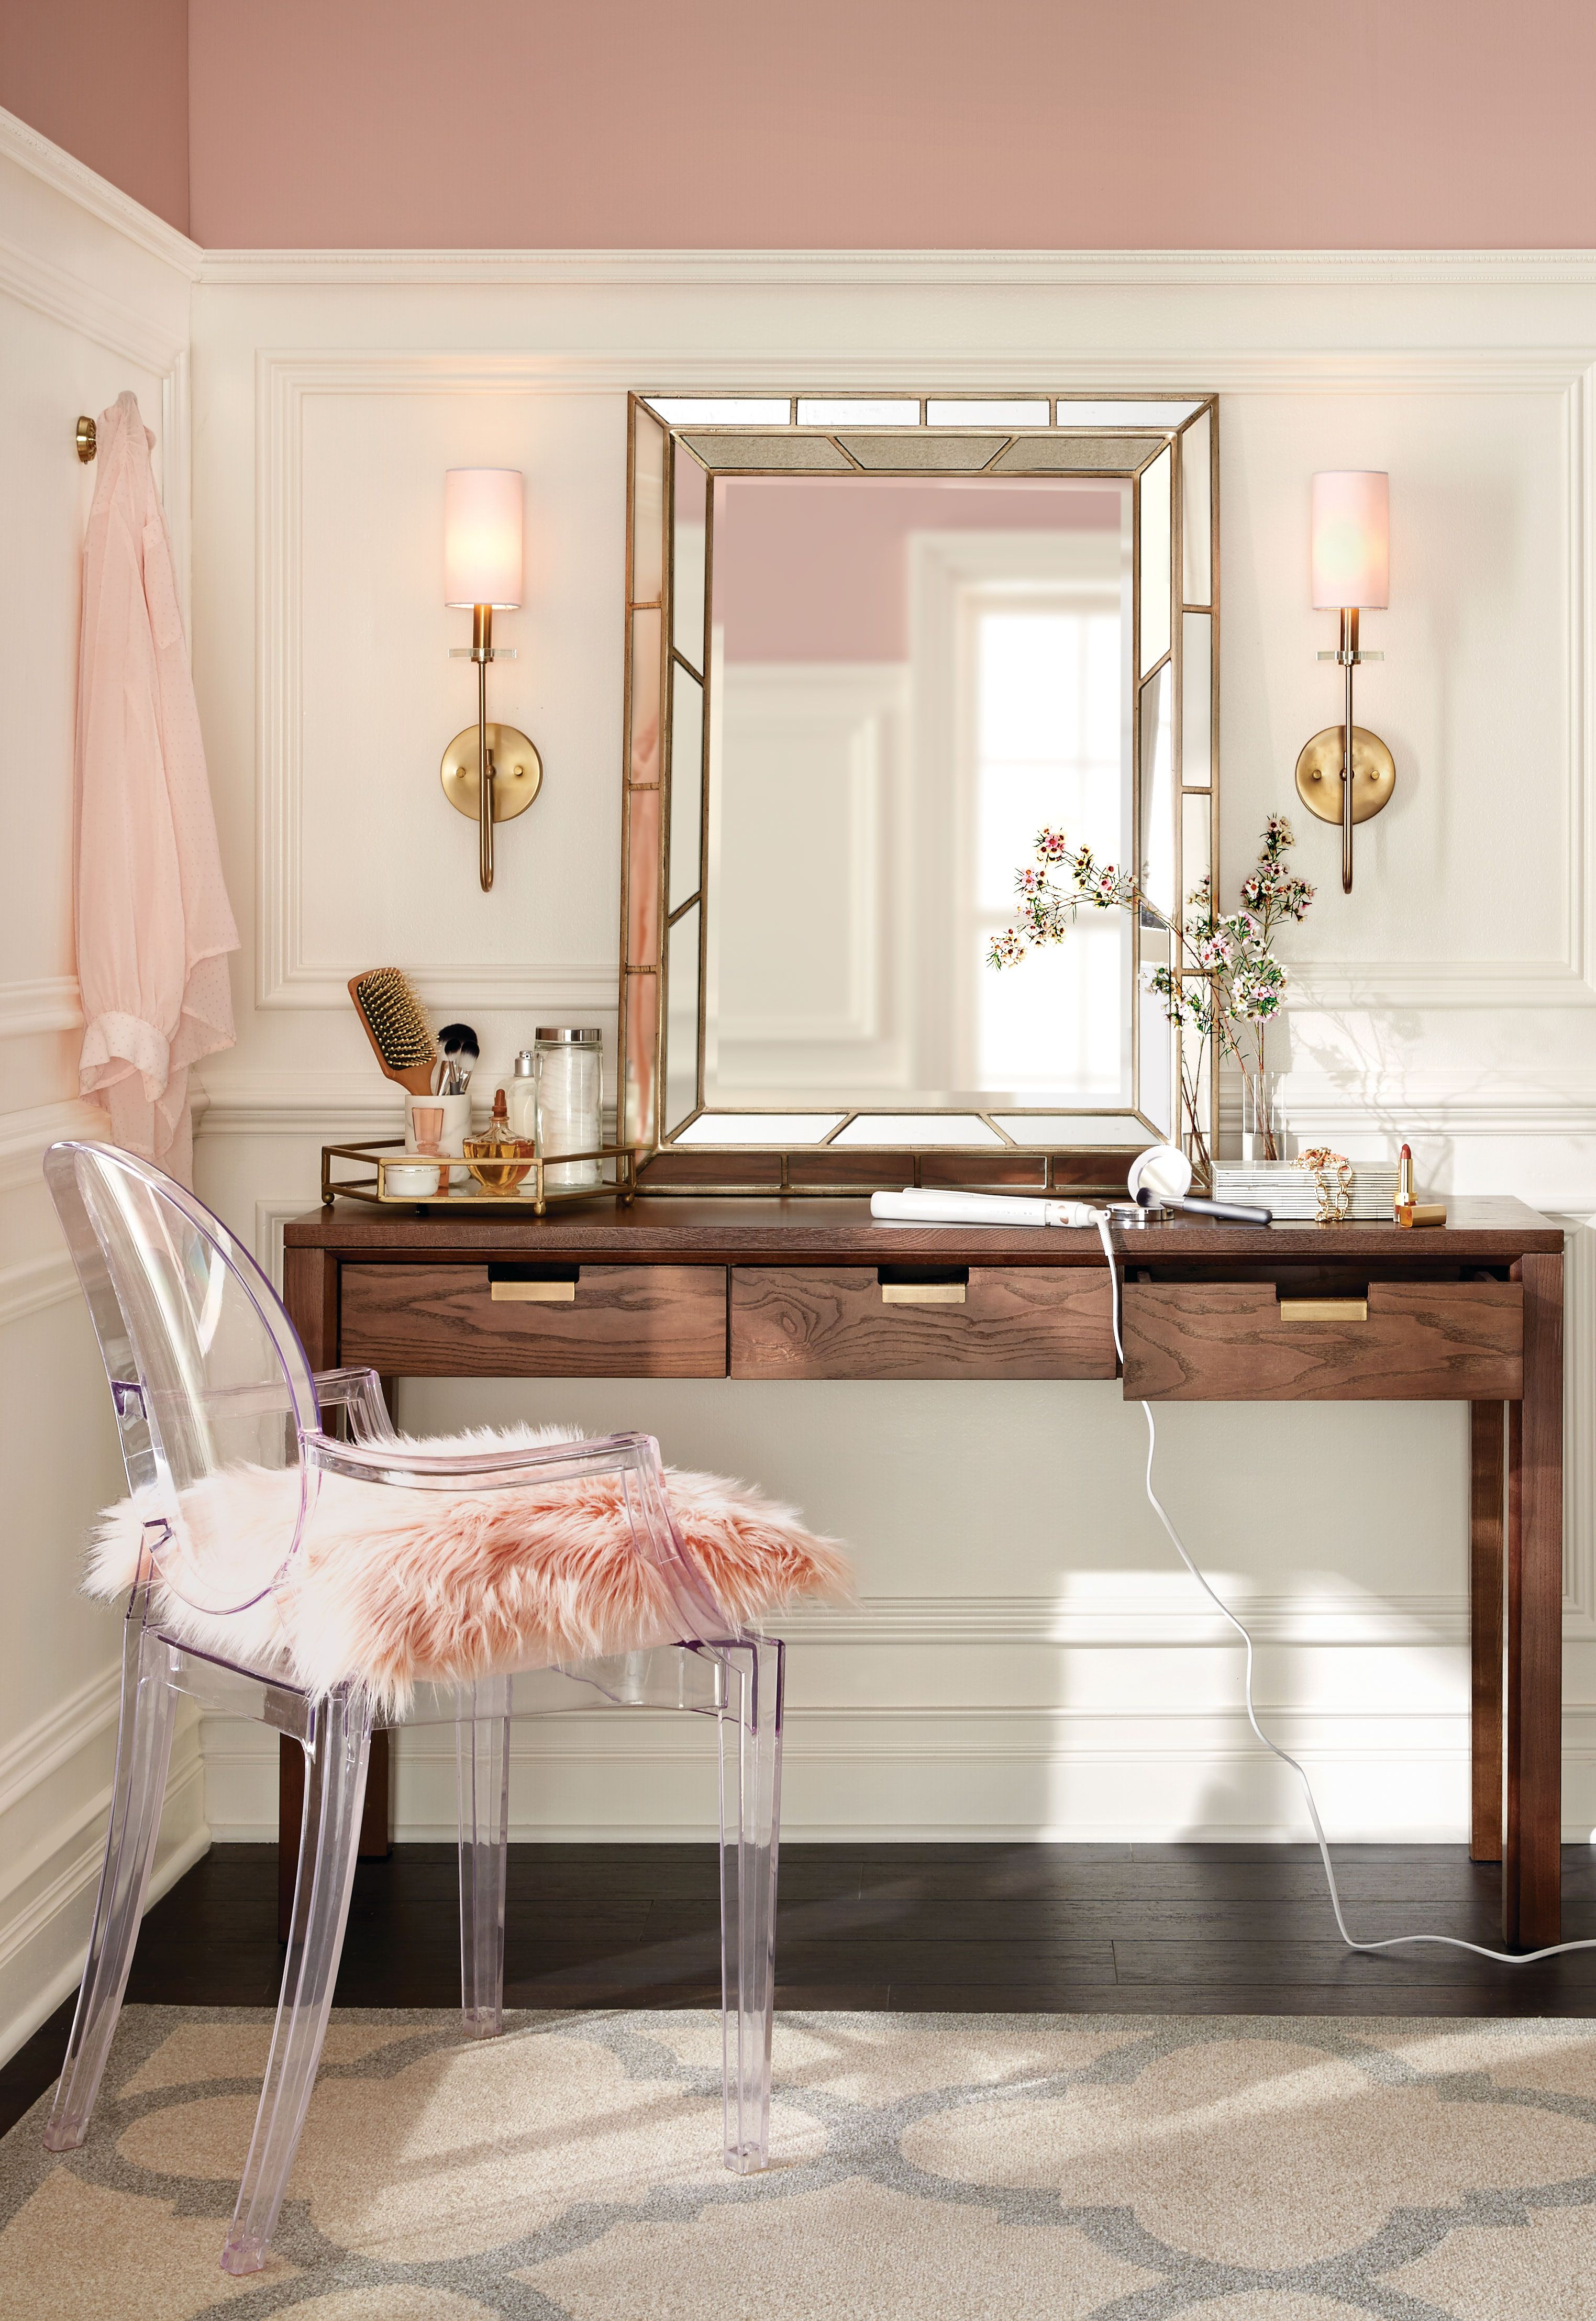 Create a sleek makeup vanity with a minimalistic desk and